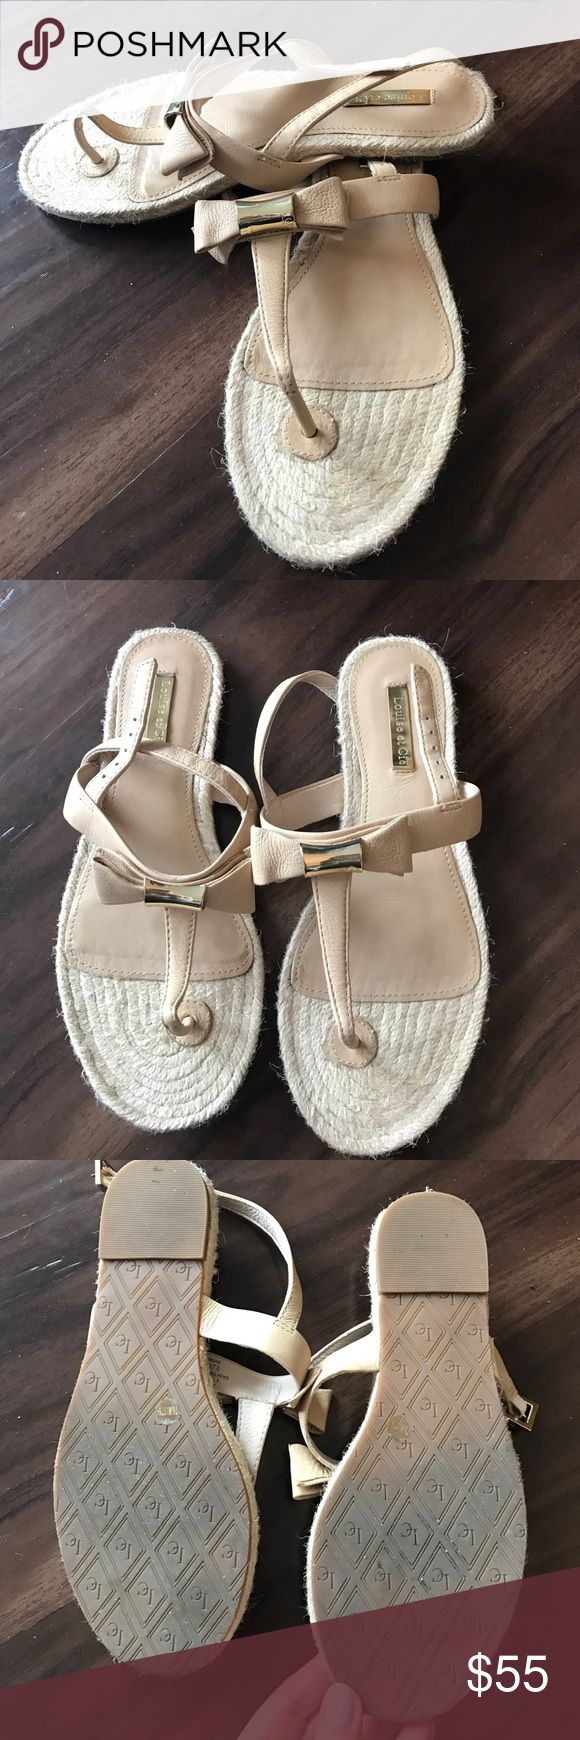 Nude bow Louise et Cie espadrilles flat sandals The perfect summer sandal! Beautiful nude espadrilles sandals with a nude bow and a touch of gold! Purchased these Louise et Cie shoes from Nordstrom. Worn once! Louise et Cie Shoes Sandals